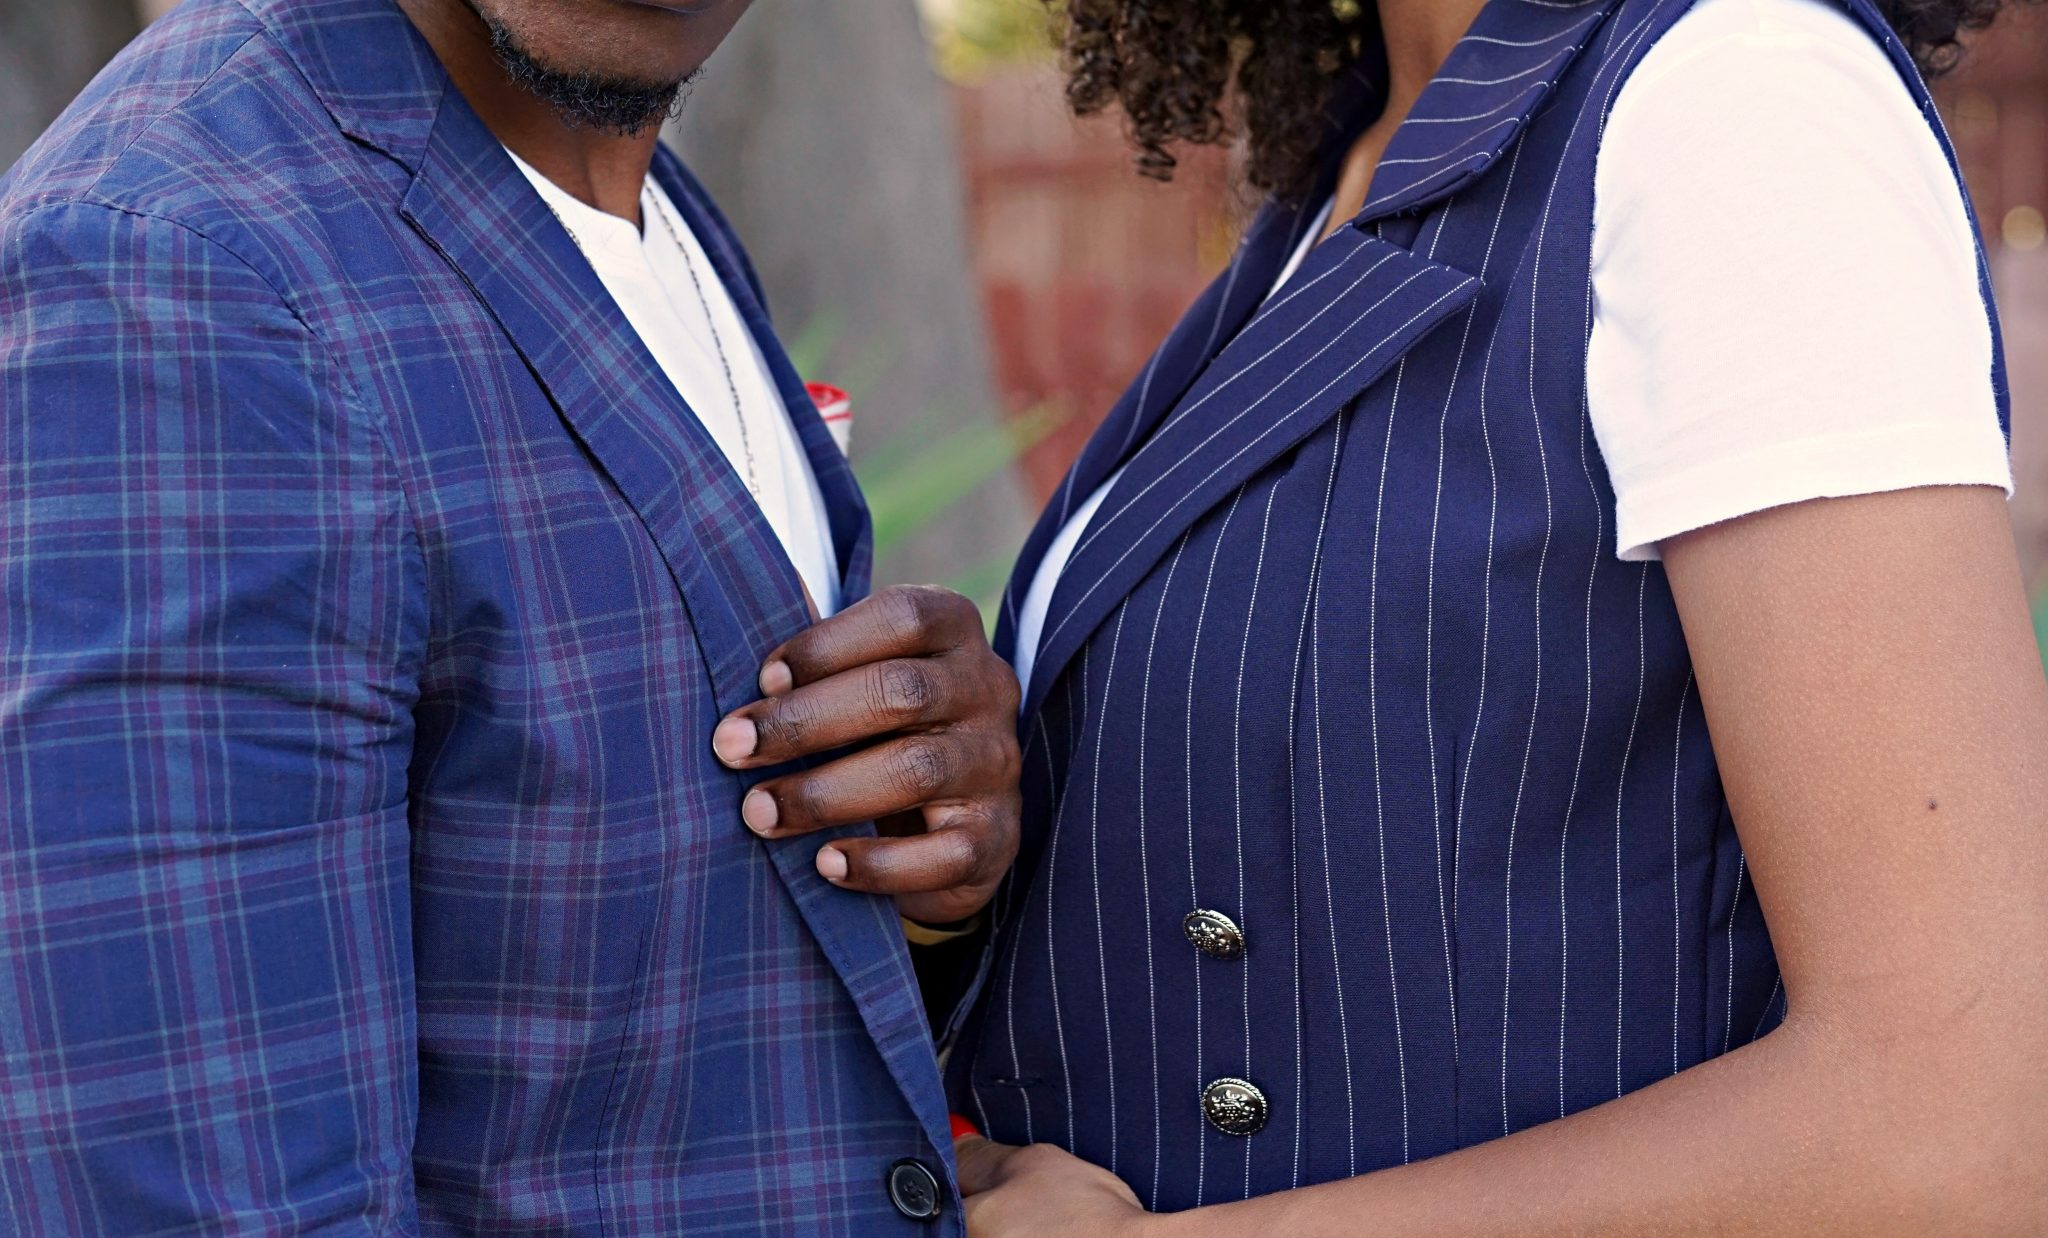 casually-tailored-date night-plaid-cotton-black-couple-wearing-suits-summer-suiting-summer-outfit-ideas-2